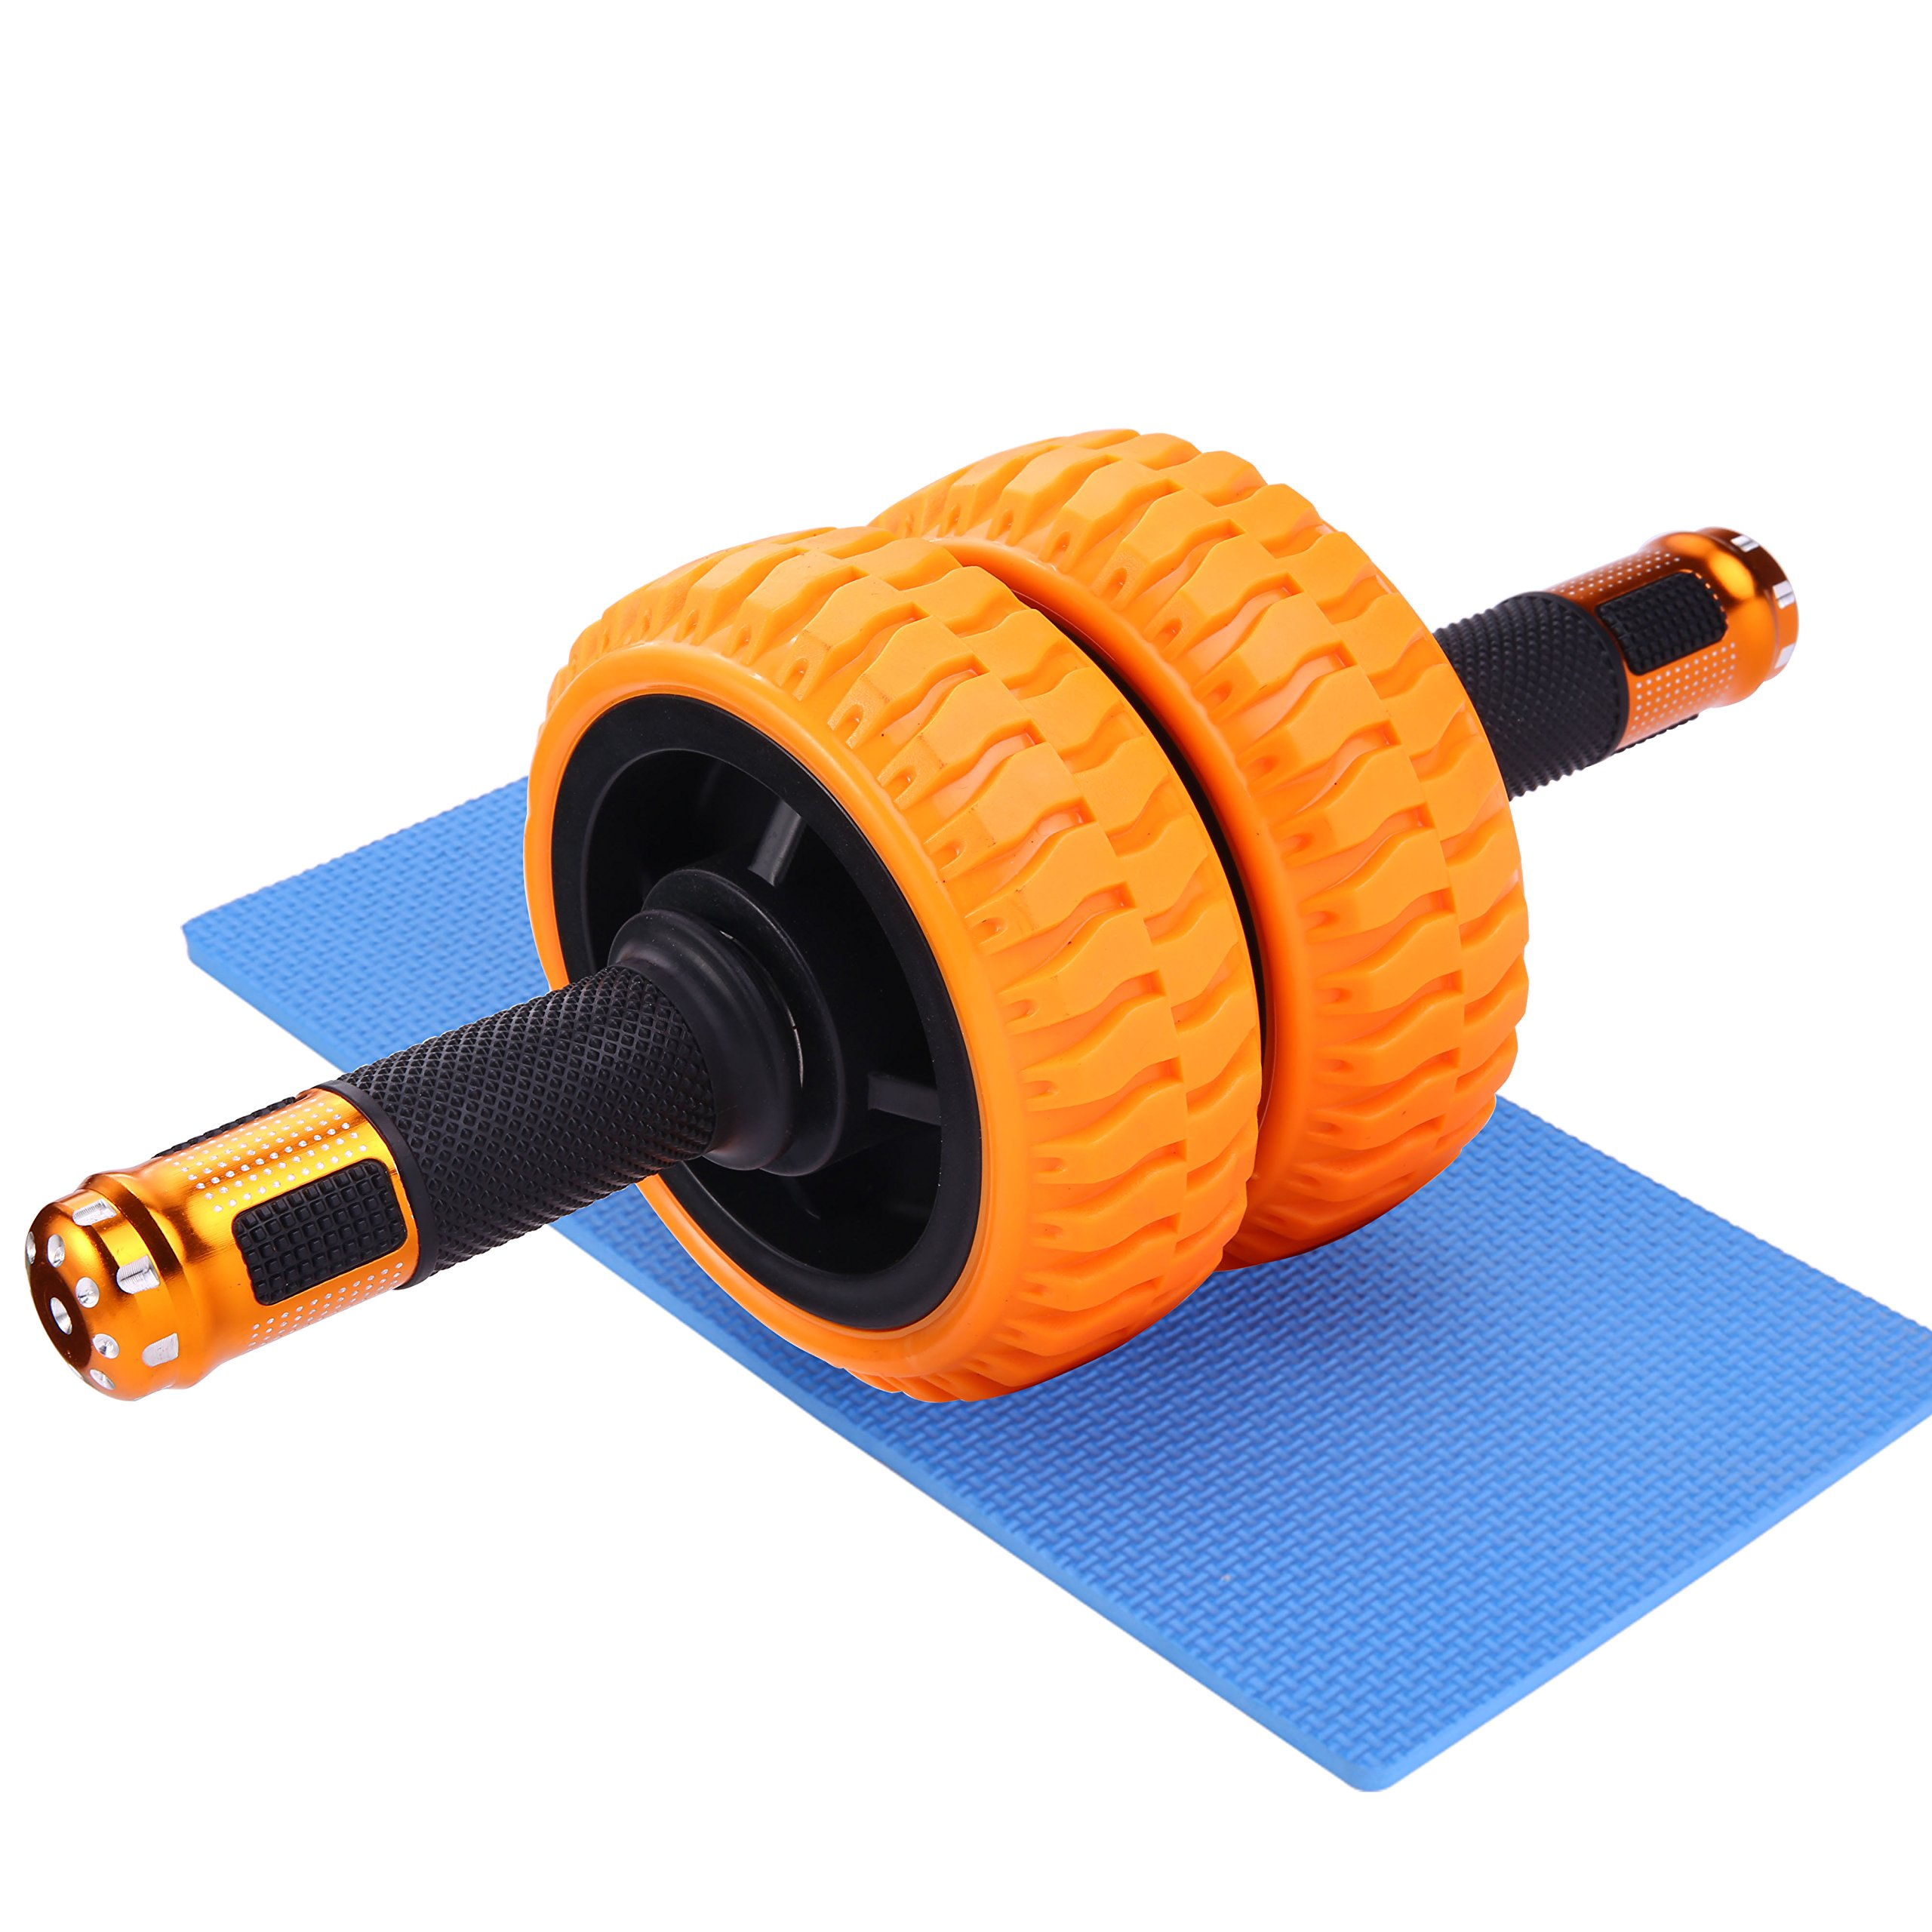 Wnnideo Ab Wheels Roller With Knee Pad - The Exercise Wheels with Stable Dual wheels and Reinforced Steel Handles Great for Core Strength Training/Abdominal Workout